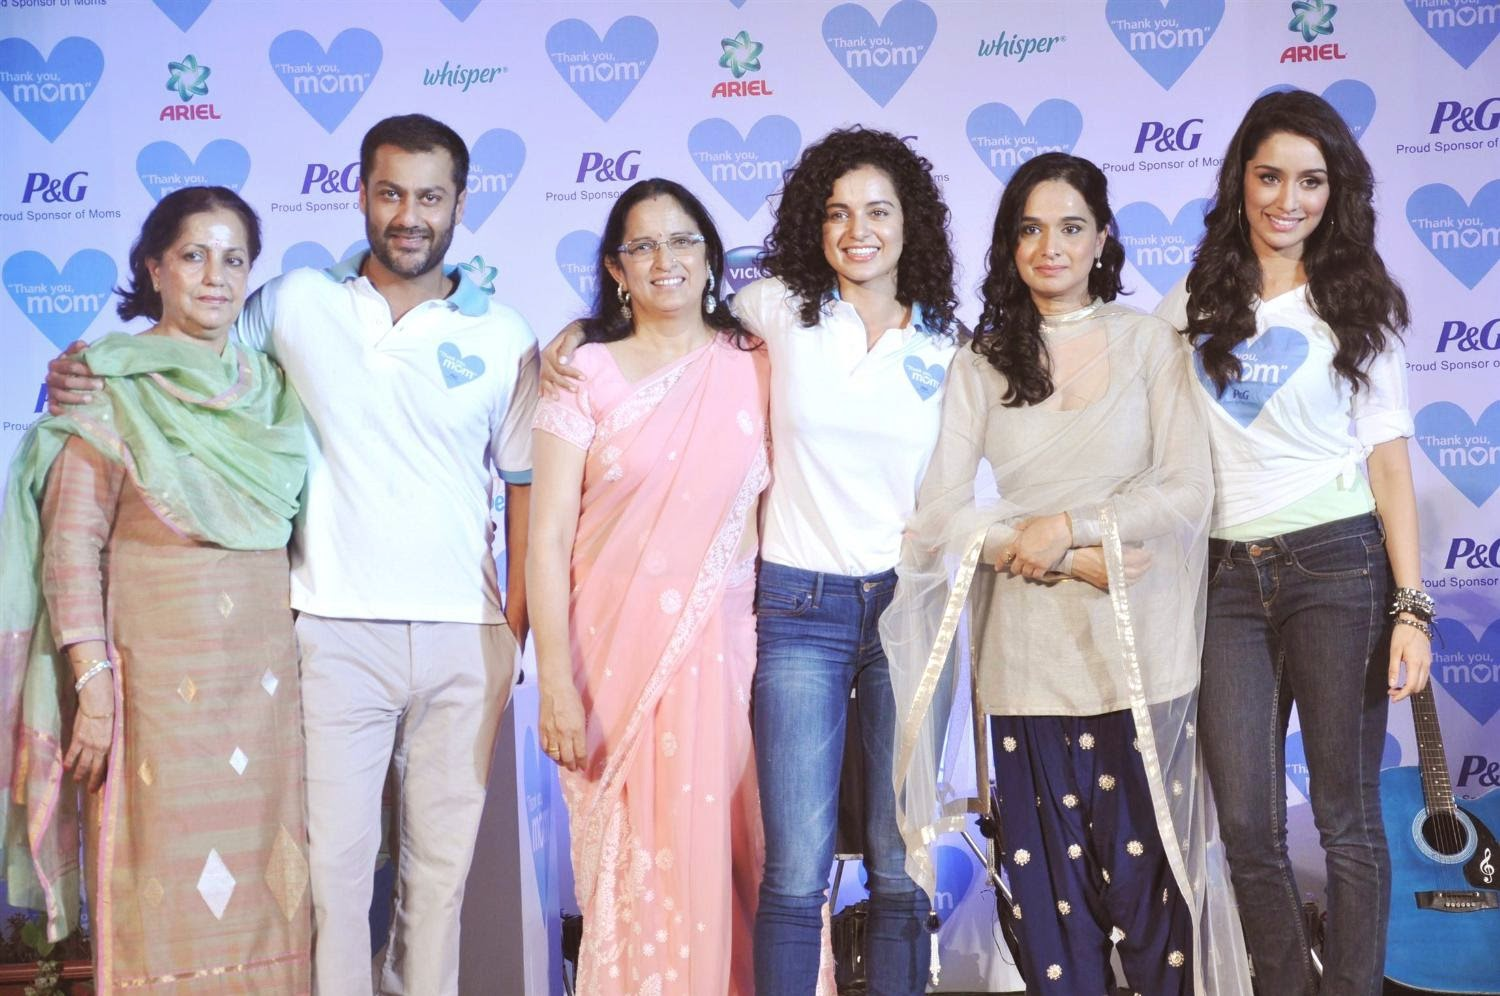 Kangana Ranaut, Abhishek Kapoor, Shraddha Kapoor with their moms at P&G thank you mom event in Bandra